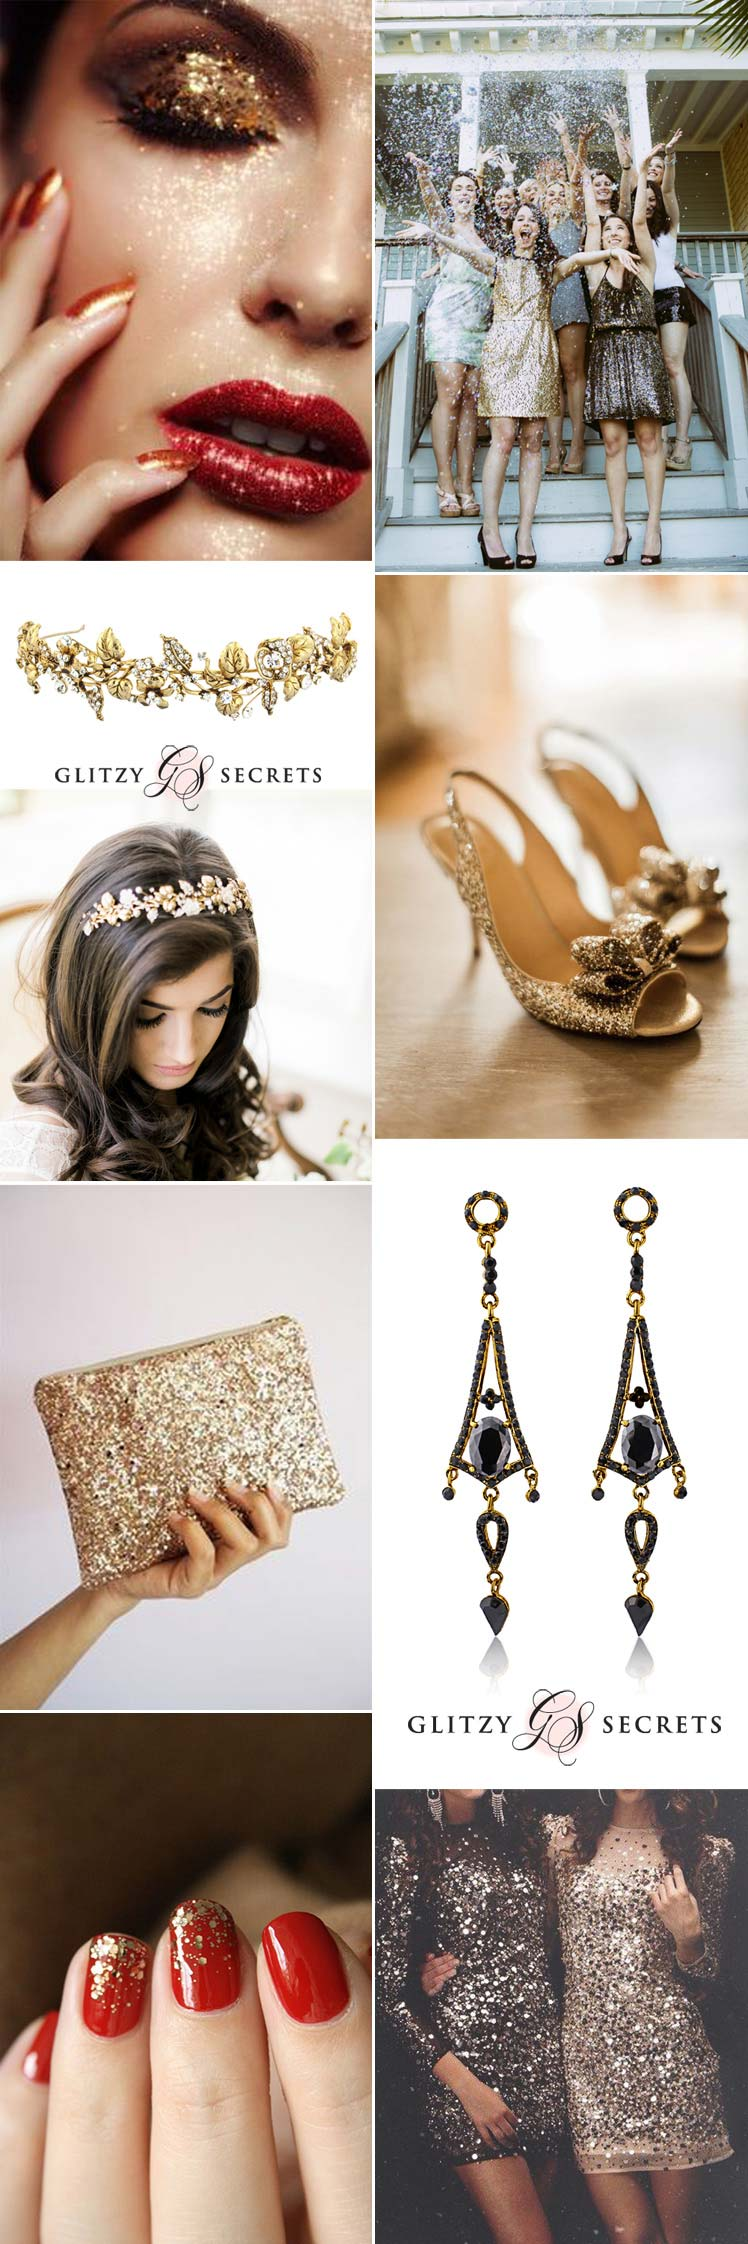 Glamourous style ideas to sparkle at your Christmas party